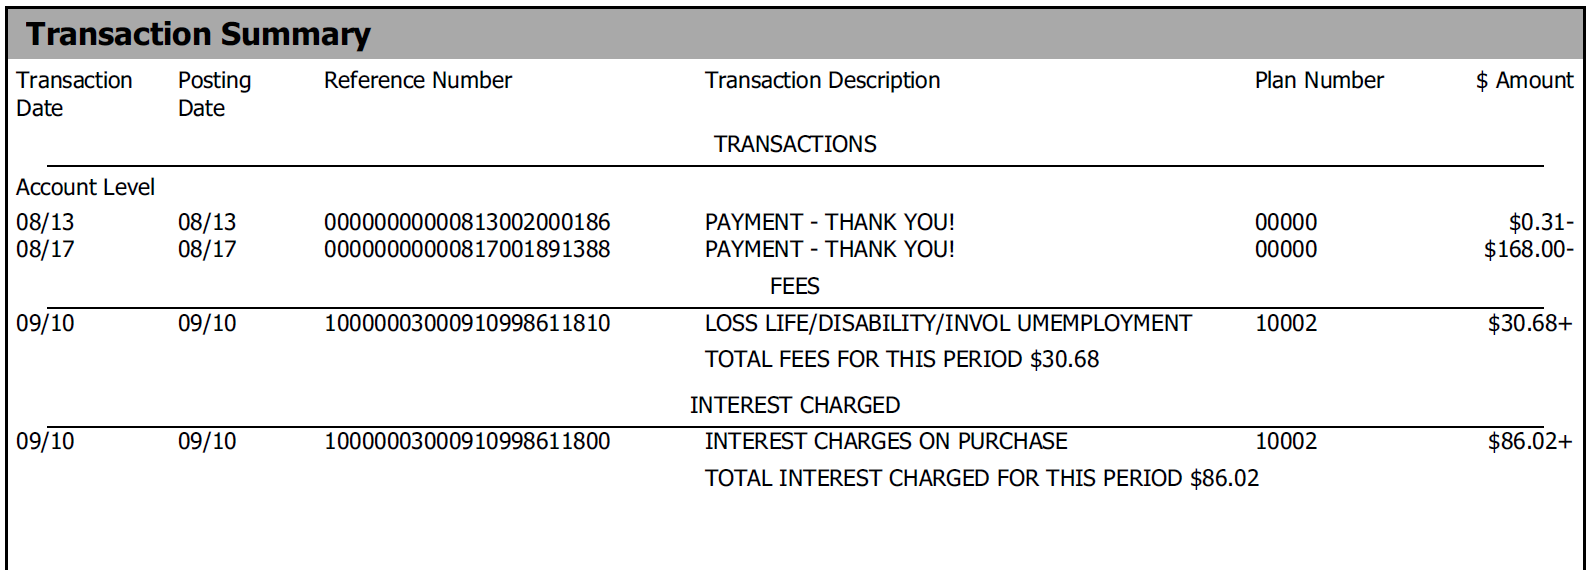 Image of Transaction Summary on NWCU credit card statement